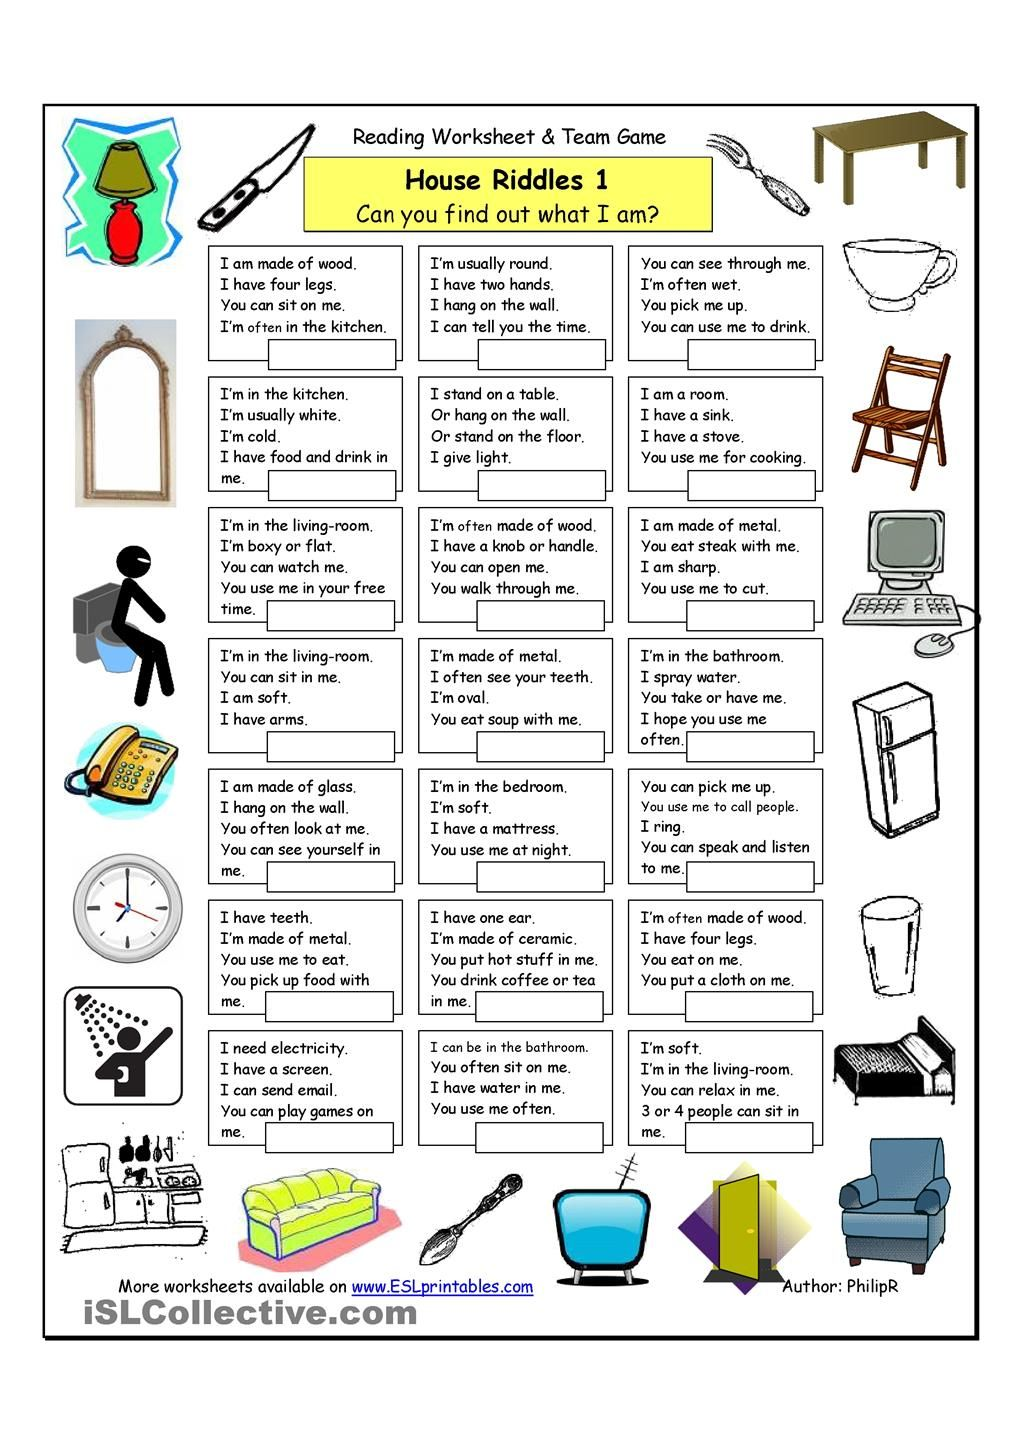 House Riddles (1) Easy A Work Games Pinterest